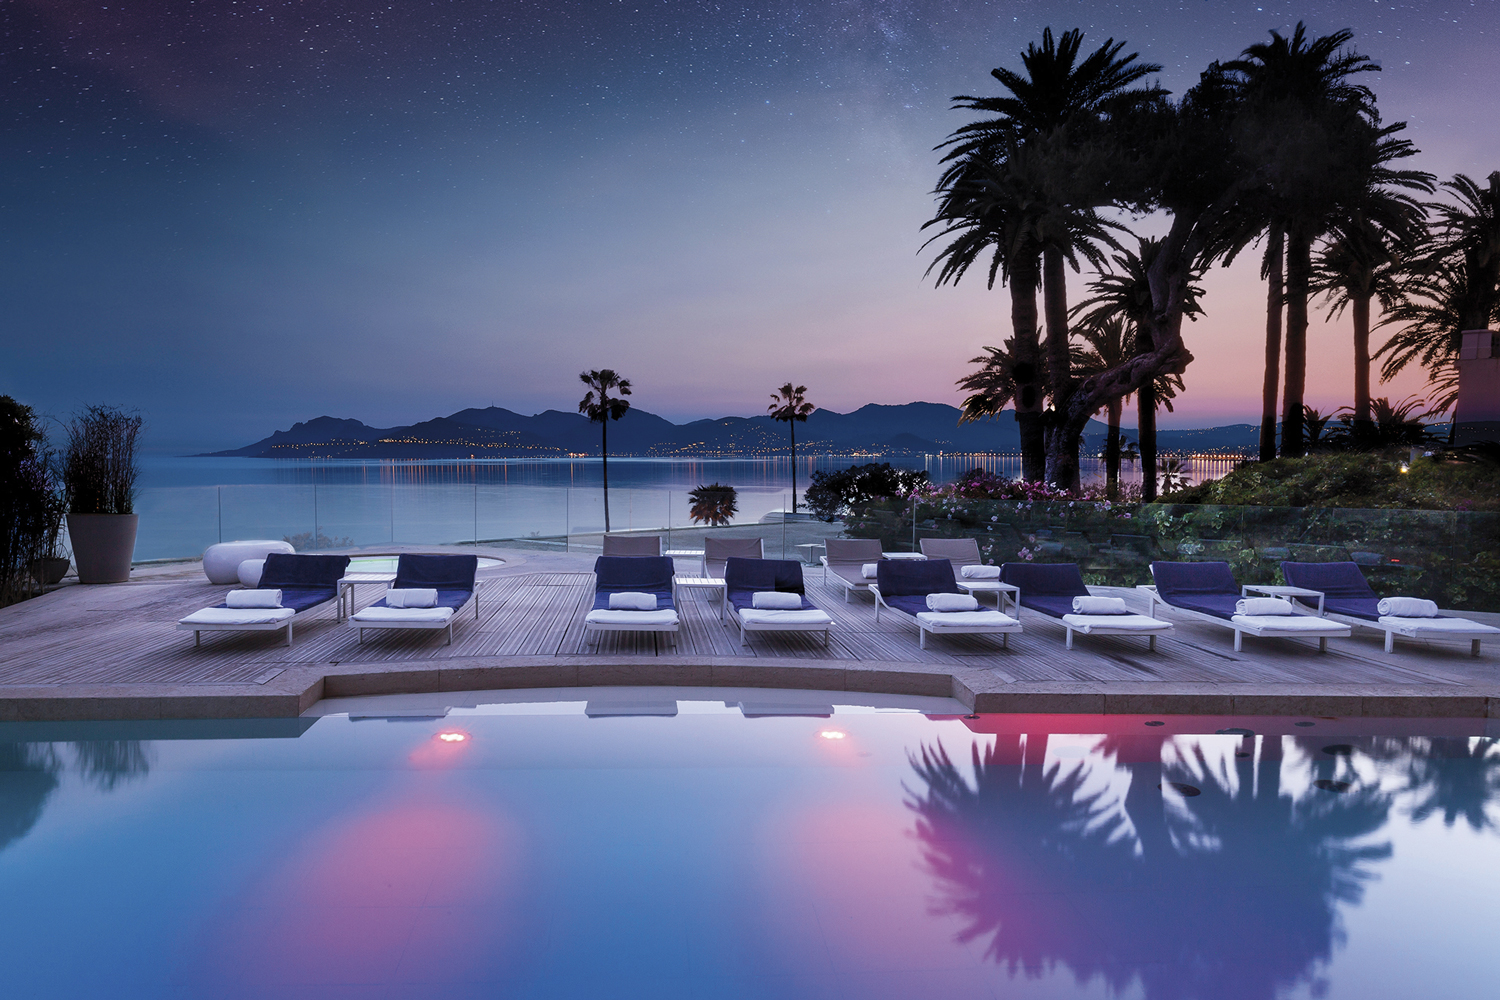 RADISSON-blu-thermes-marins-cannes-spa-by-night